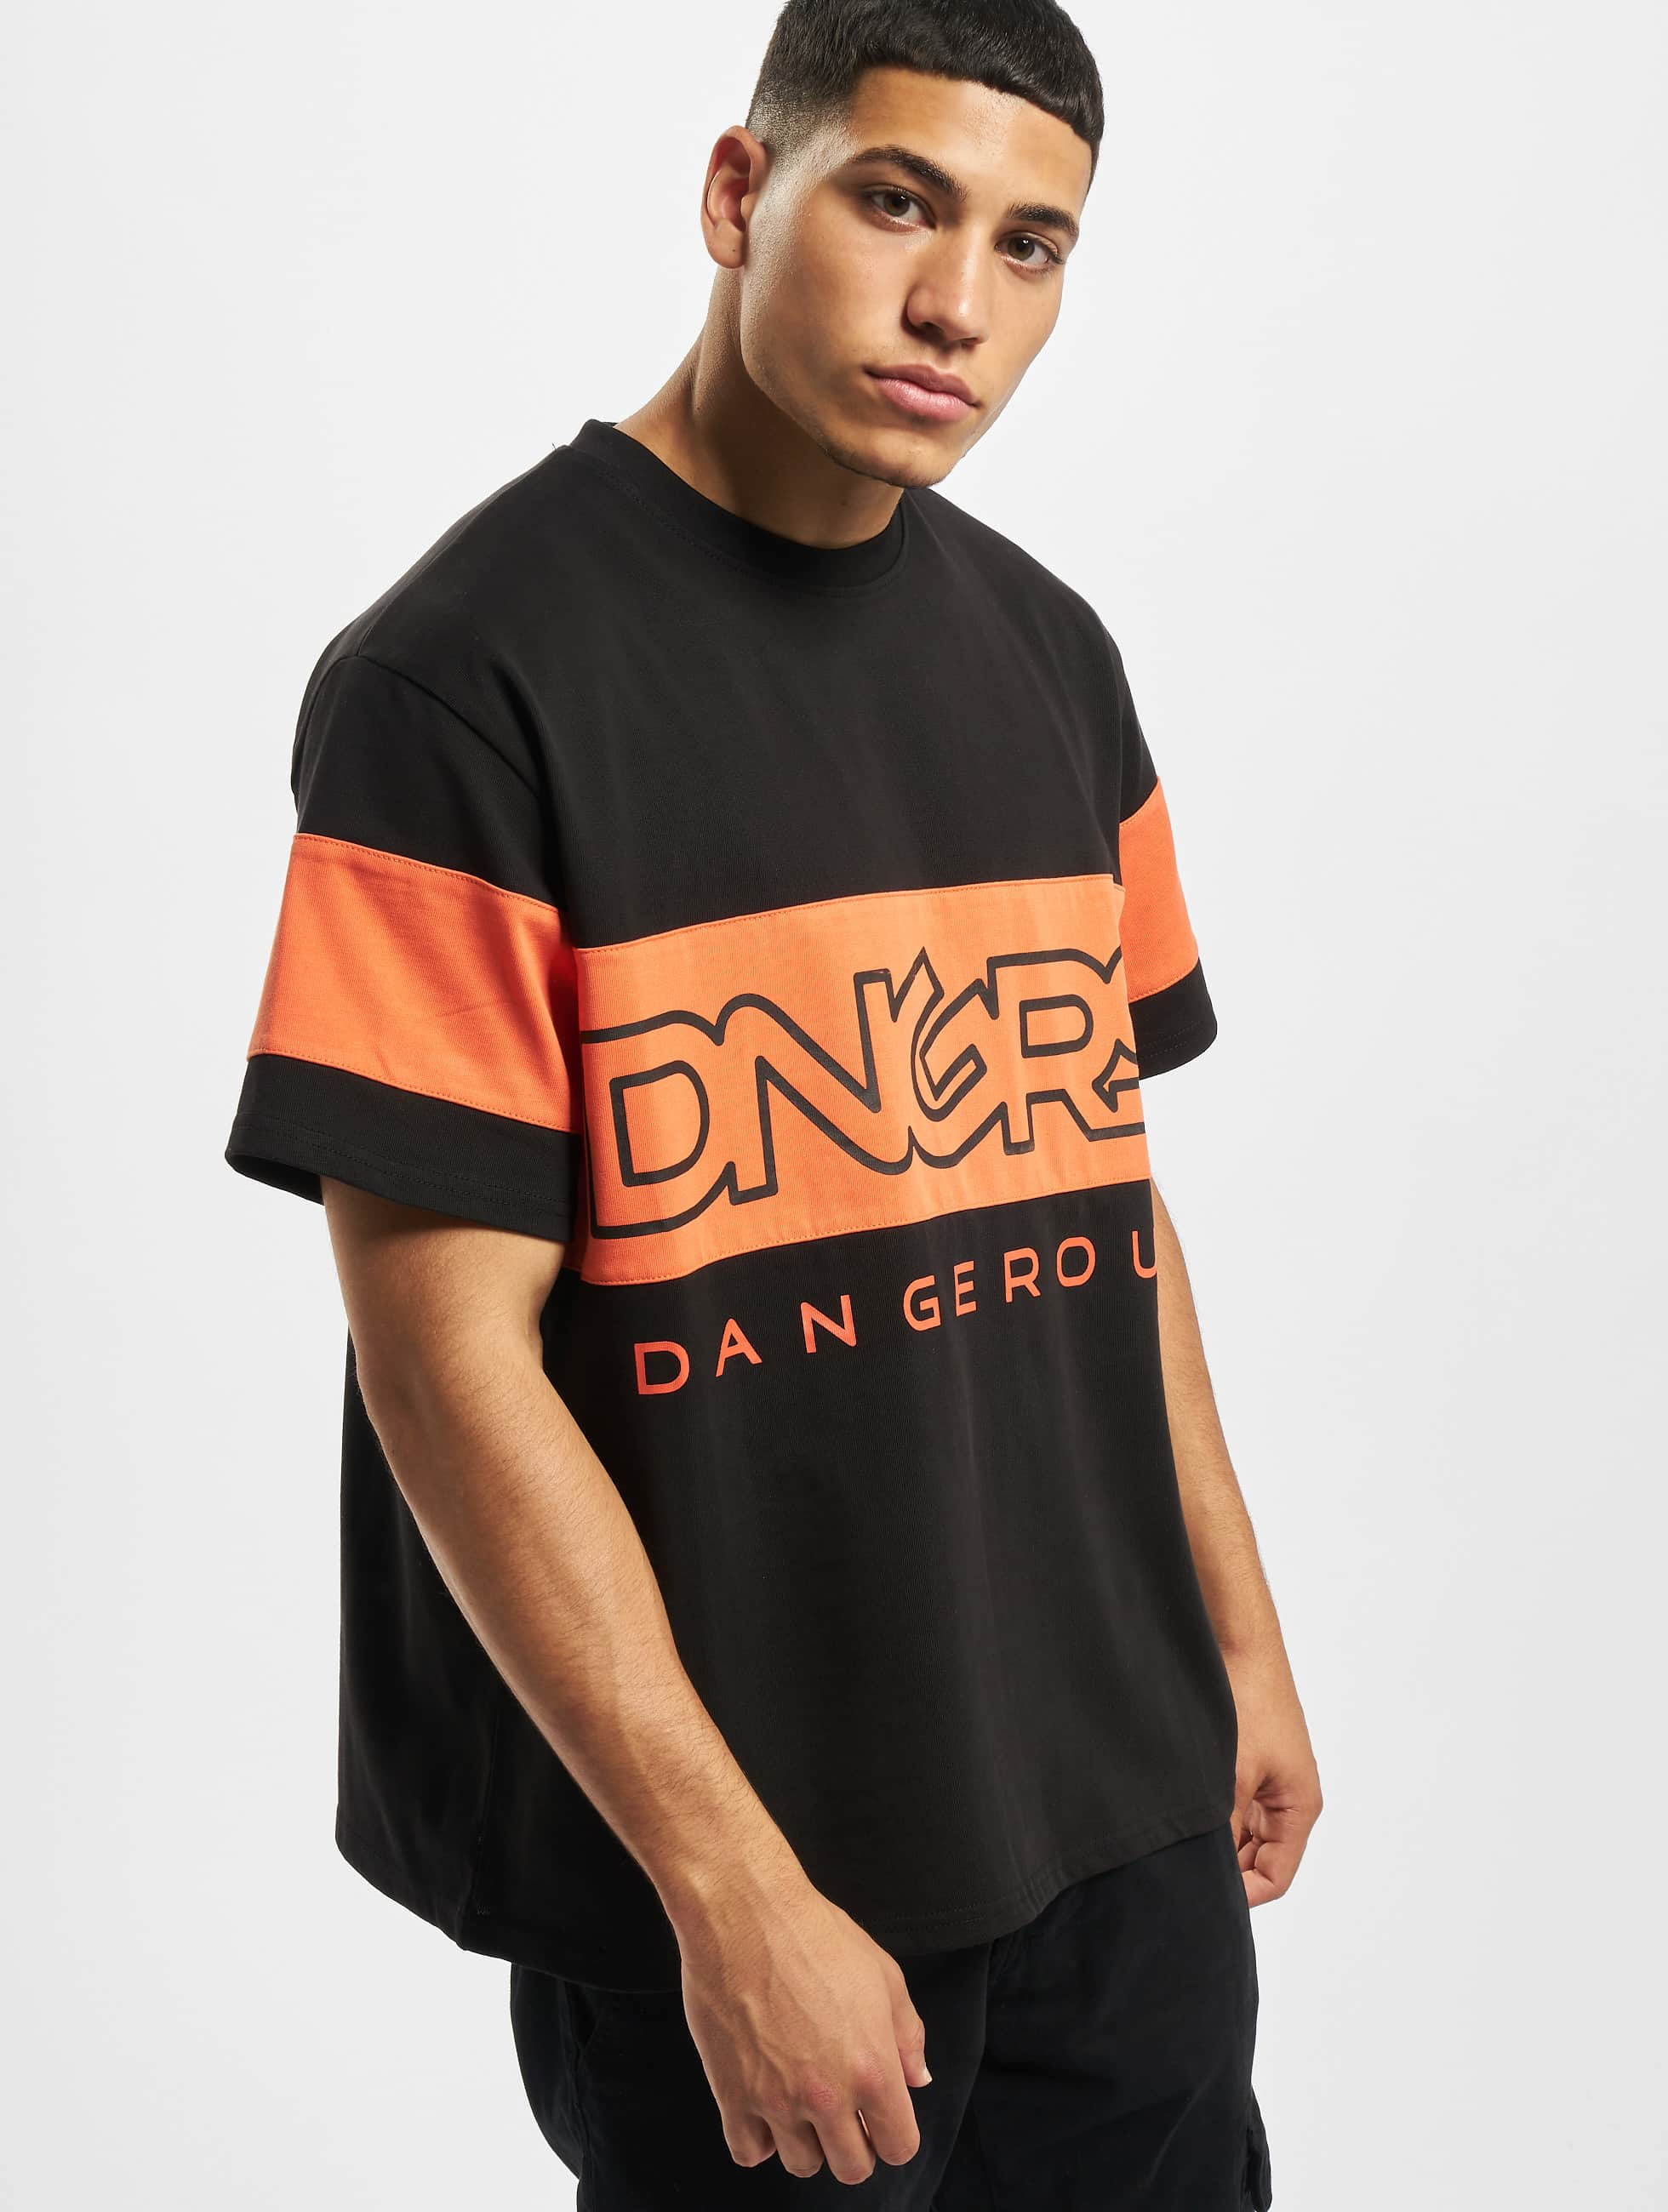 Dangerous DNGRS / T-Shirt Kindynos in black XL